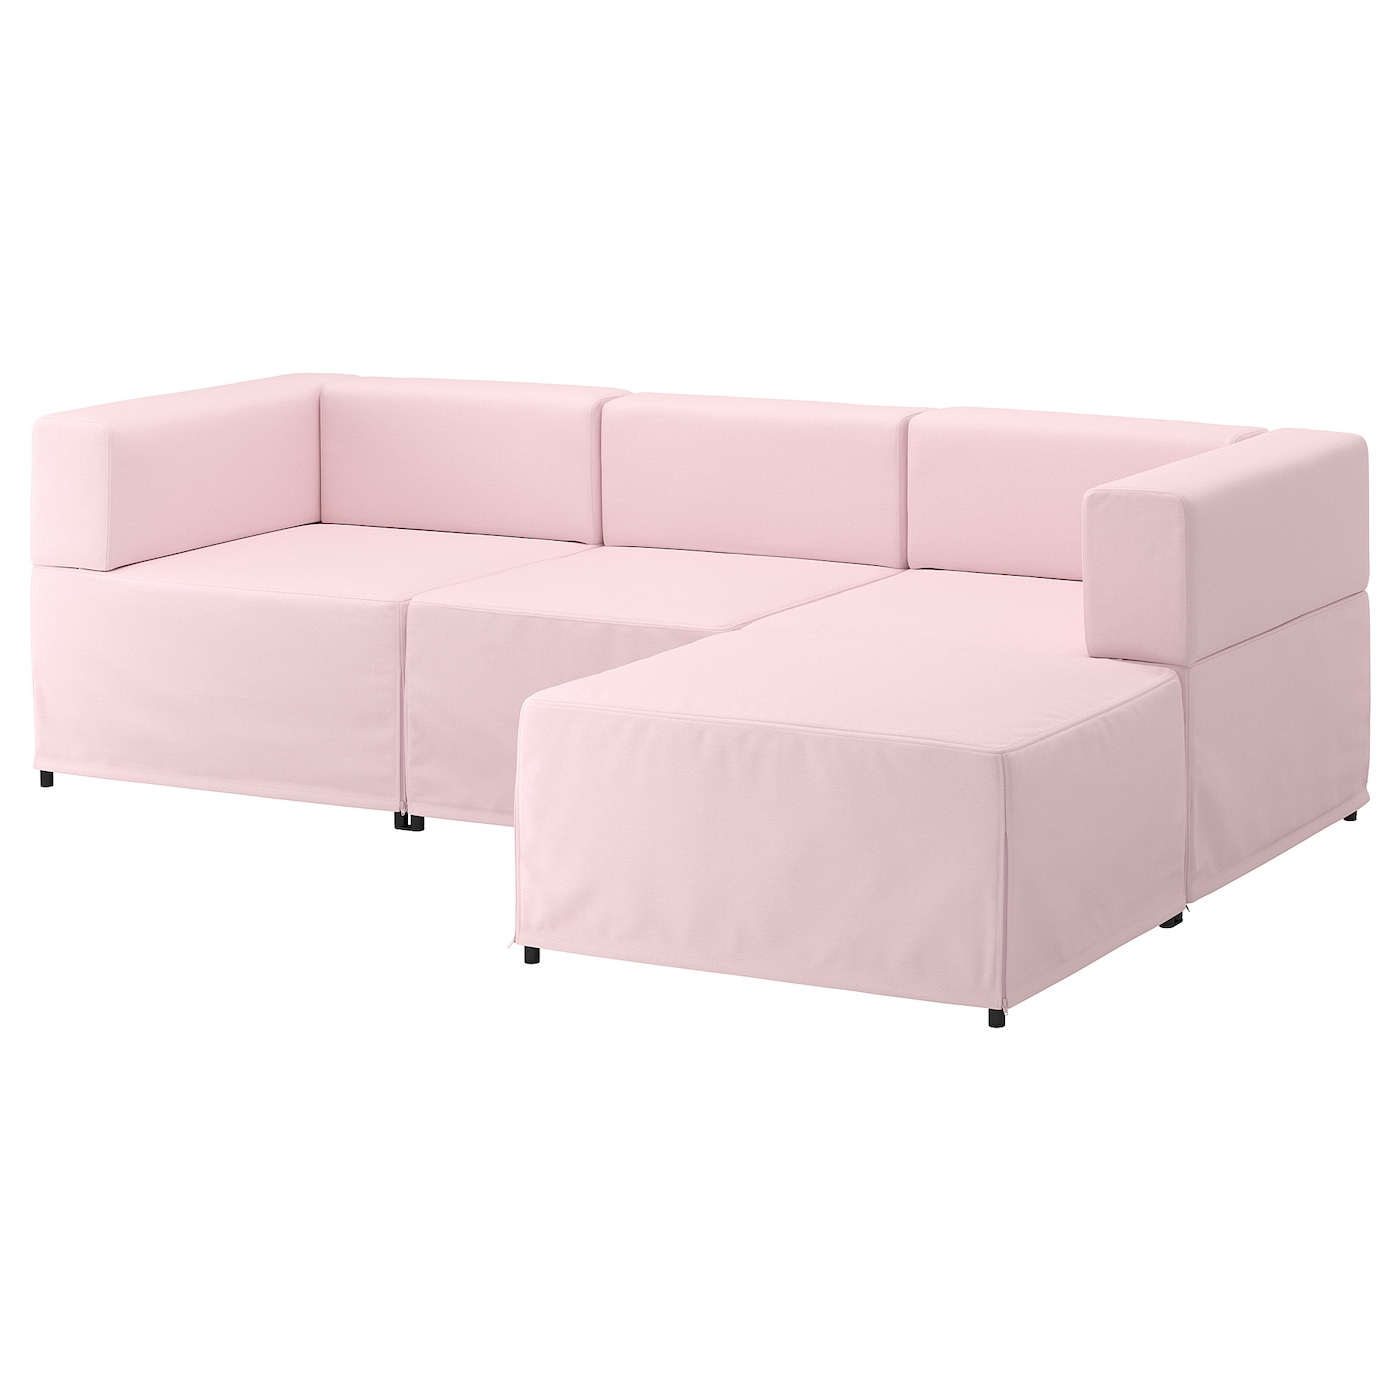 kungshamn canap modulable 3 places idekulla rose ikea. Black Bedroom Furniture Sets. Home Design Ideas